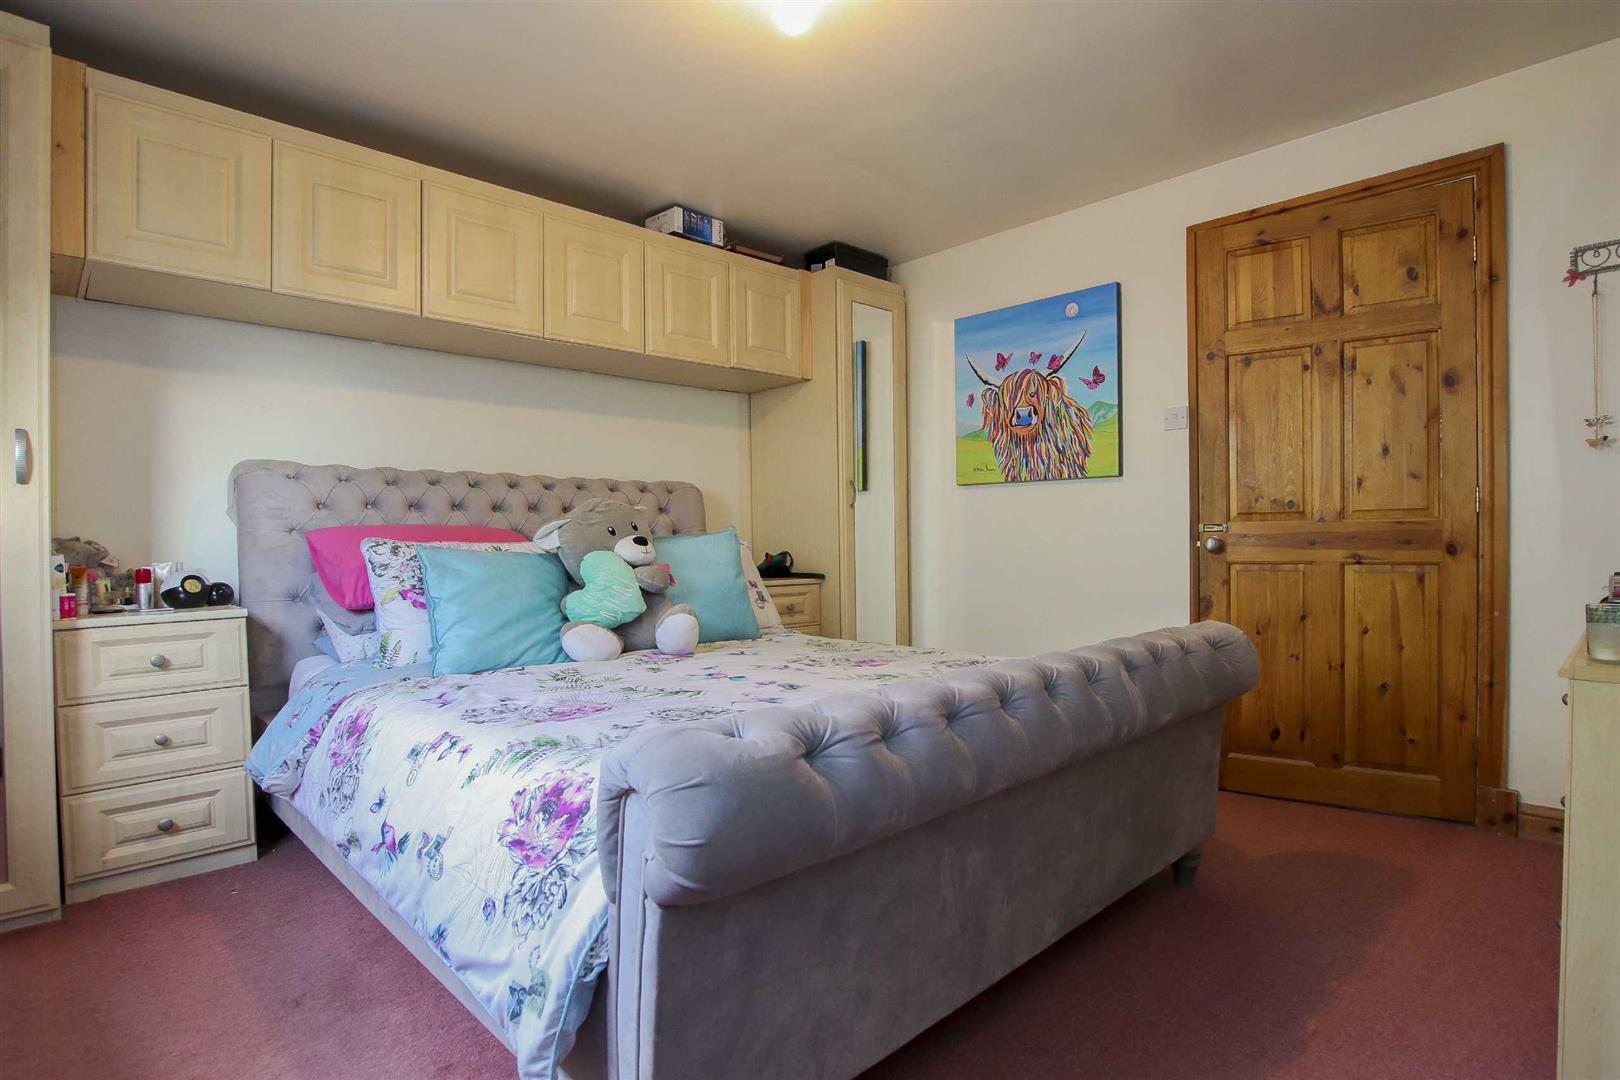 9 Bedroom Barn Conversion For Sale - Image 37